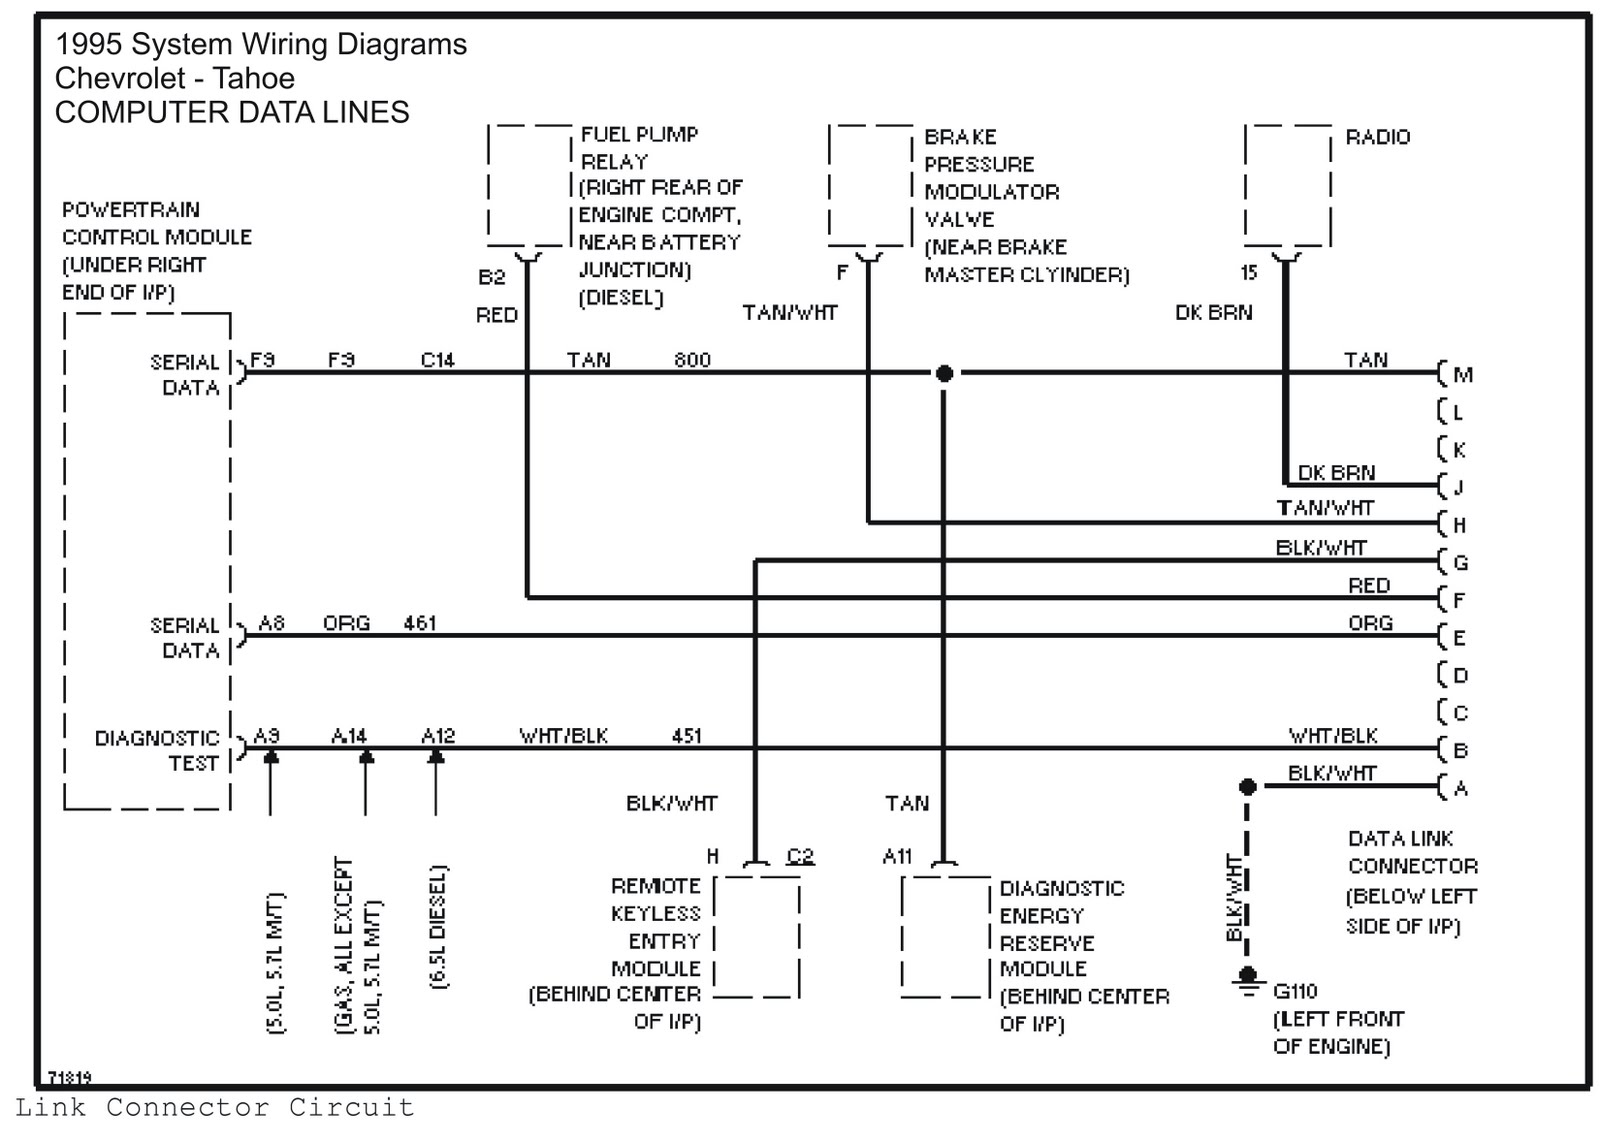 1997 Tahoe Stereo Wiring Diagram Free Diagrams 1999 Chevy Express Radio Get Image About 97